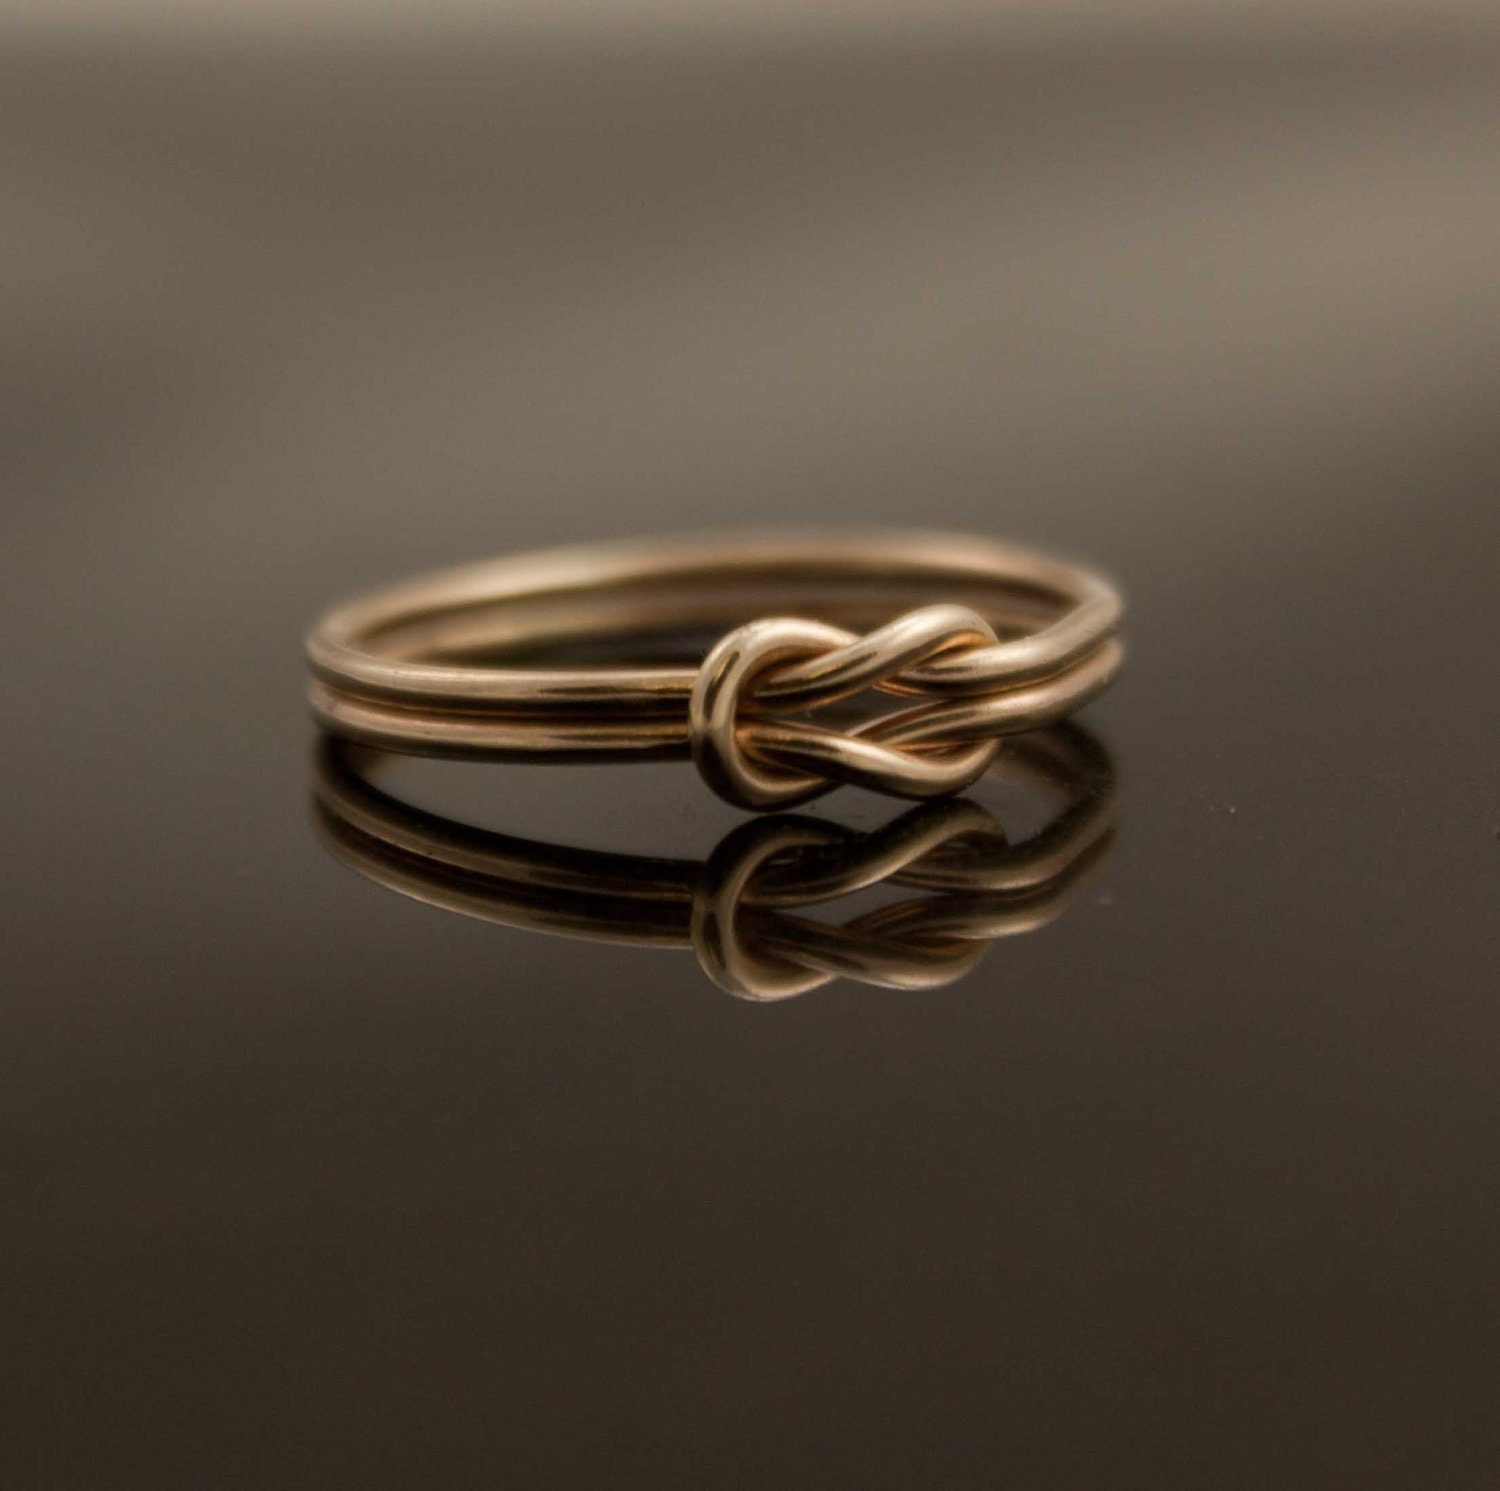 solid 14k gold infinity knot ring hug ring by indulgentdesigns With the knot wedding ring